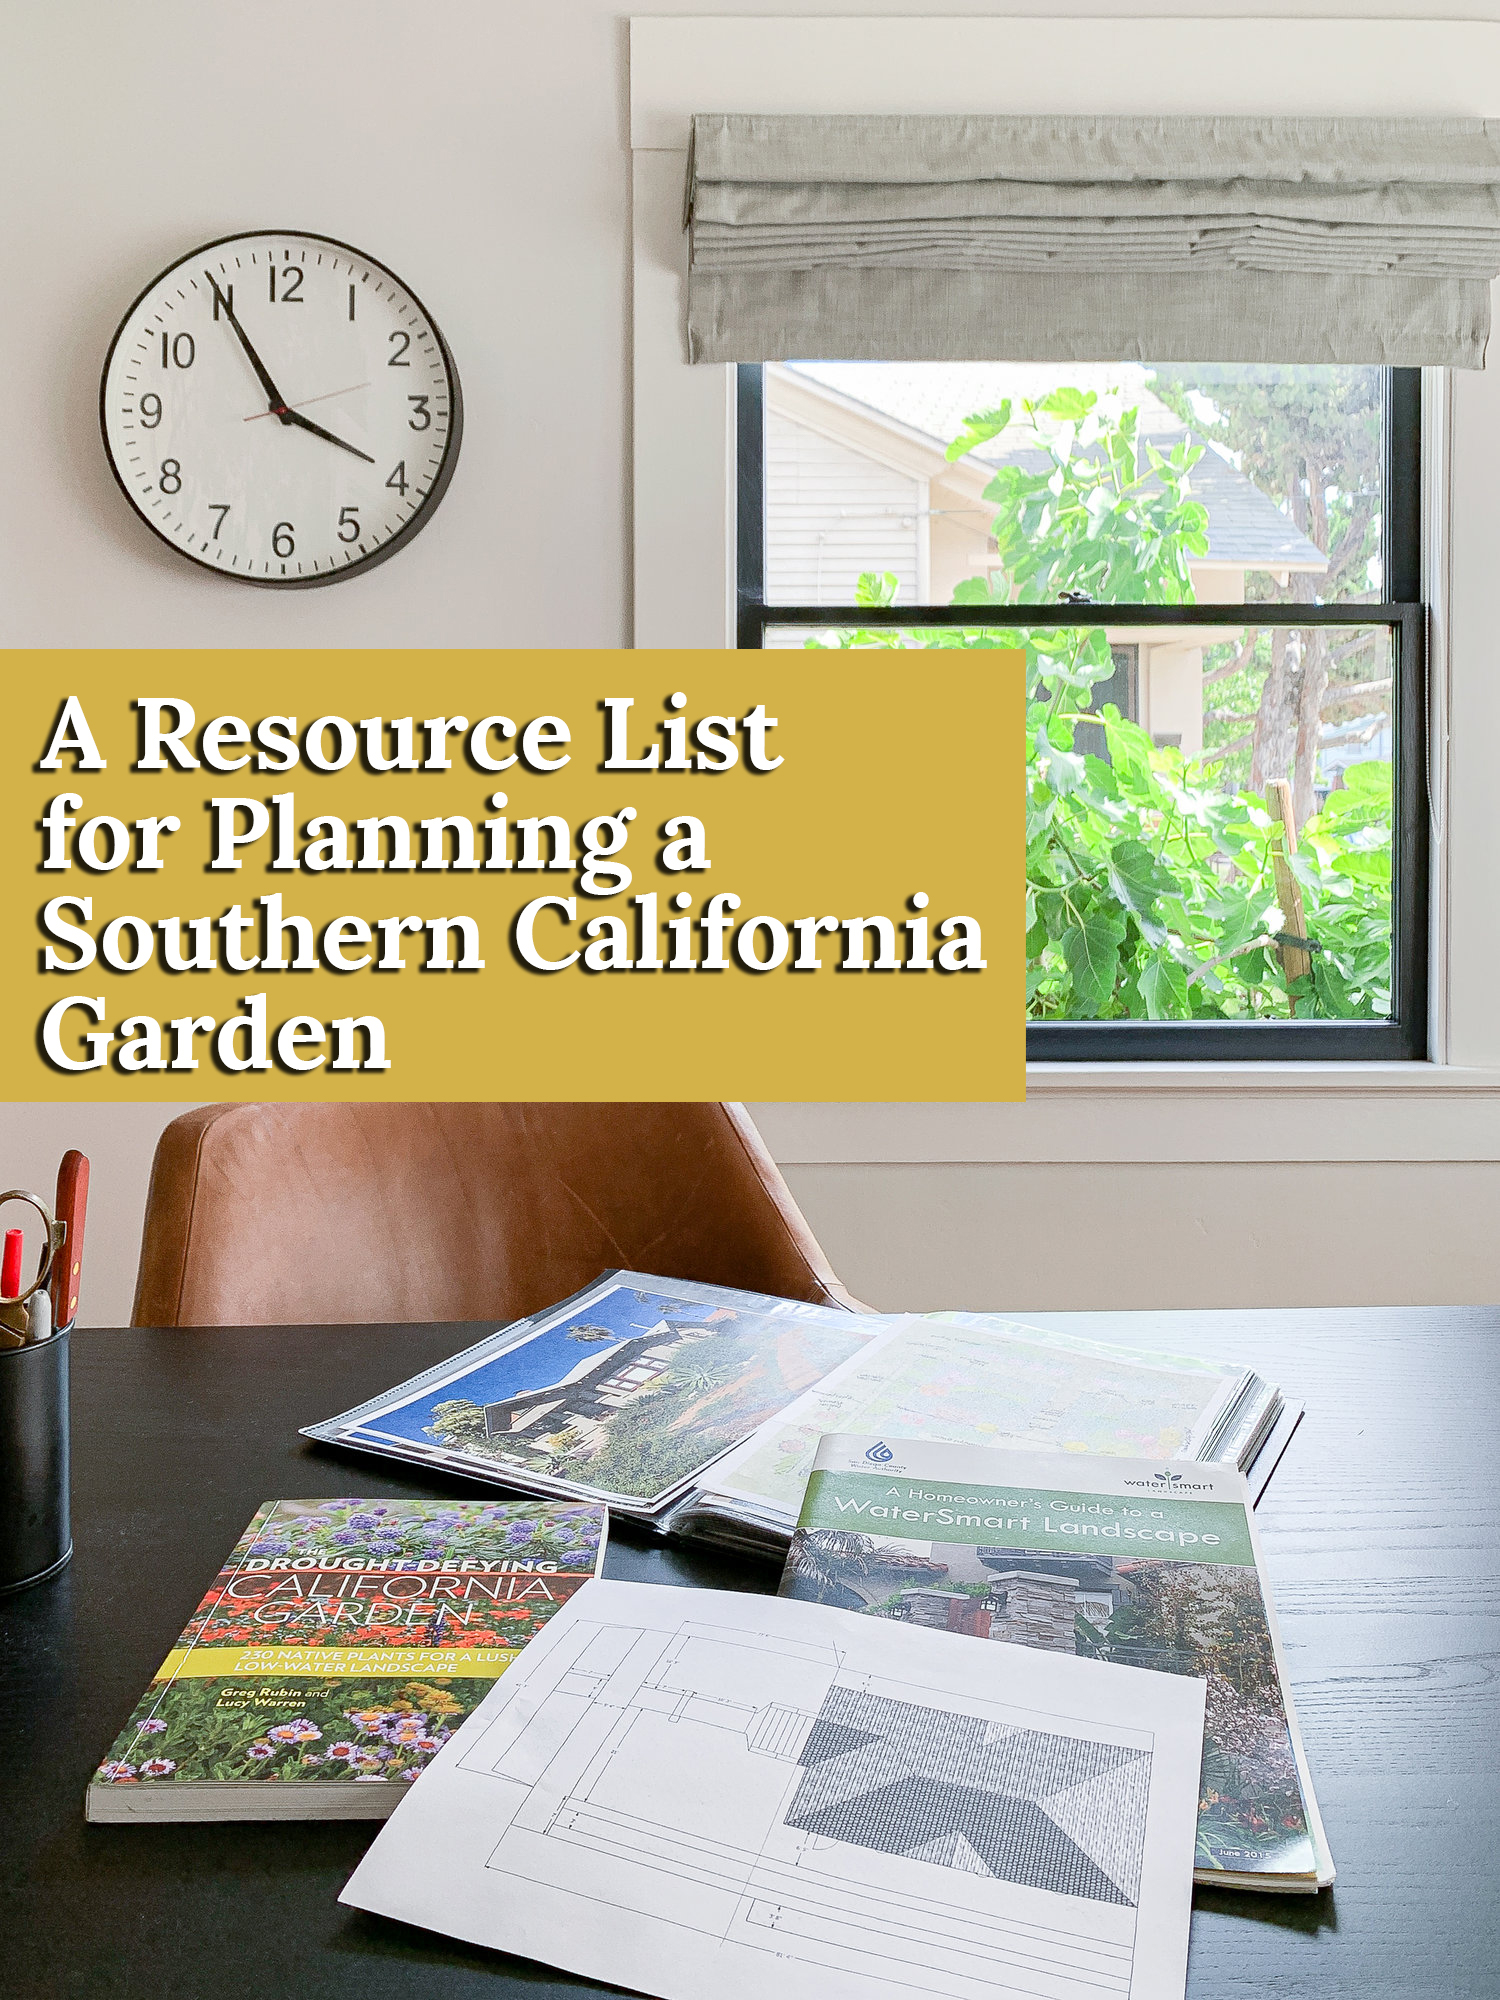 A RESOURCE LIST FOR PLANNING A SOUTHERN CALIFORNIA GARDEN+The+Gold+Hive.jpg